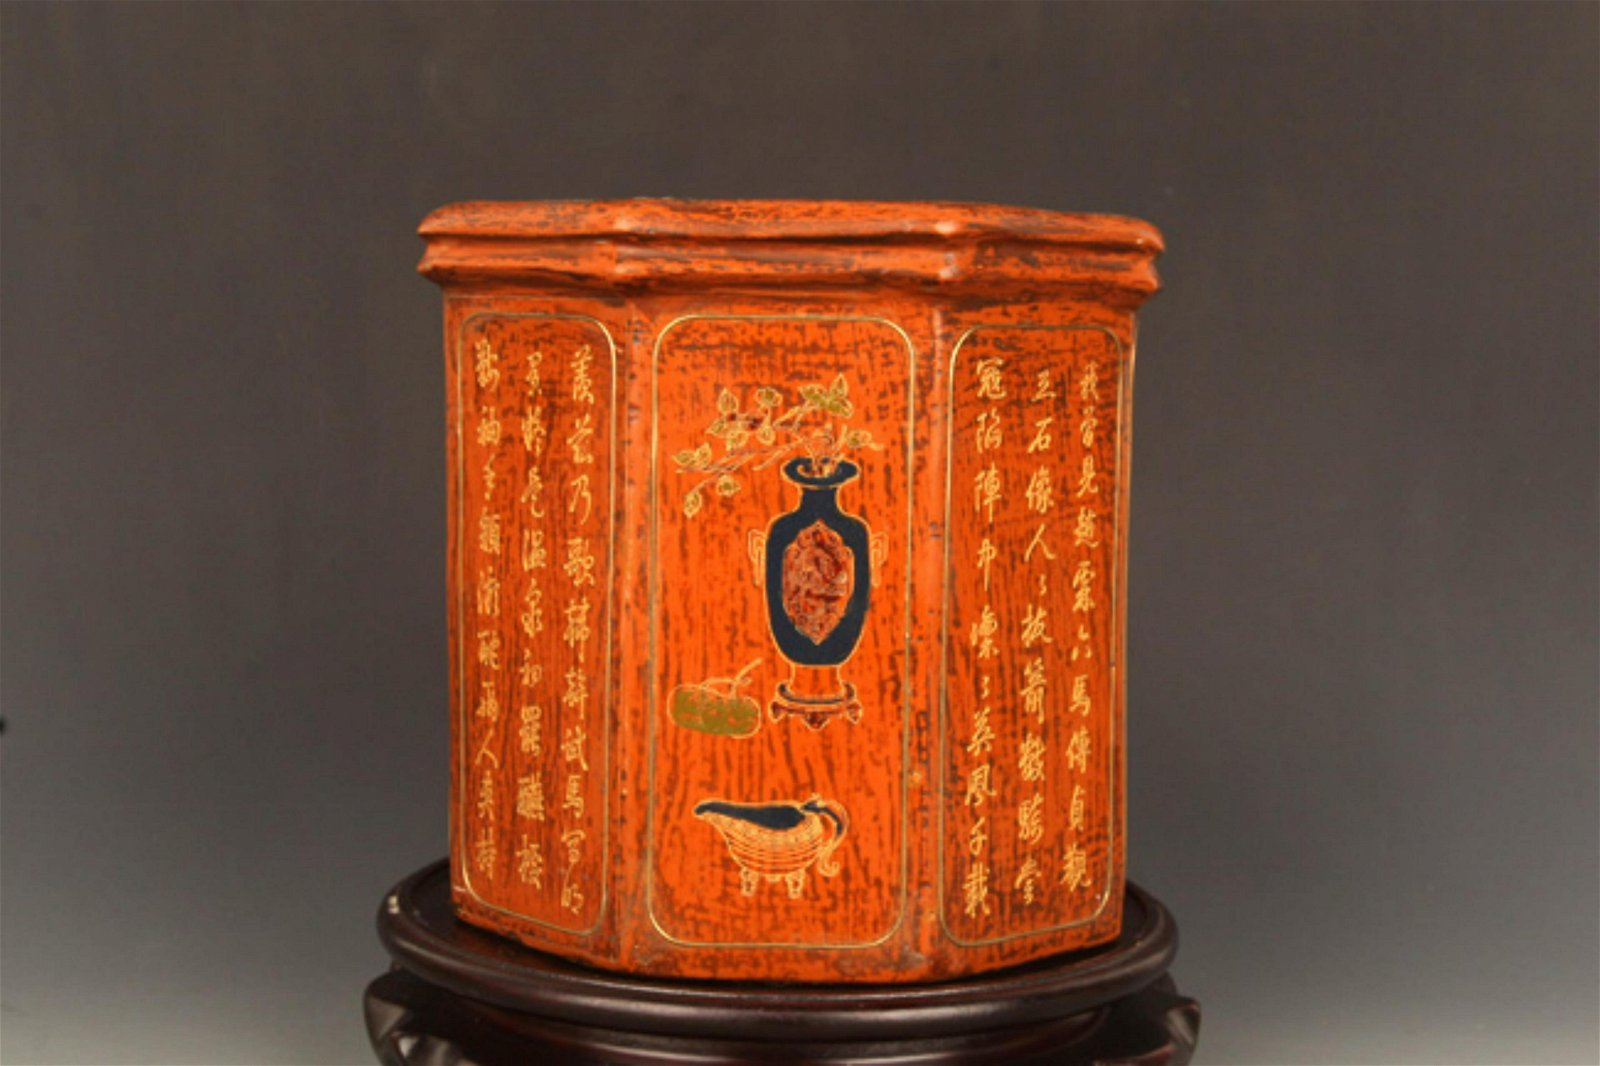 A FINE GILT LACQUERED WOOD BRUSH HOLDER